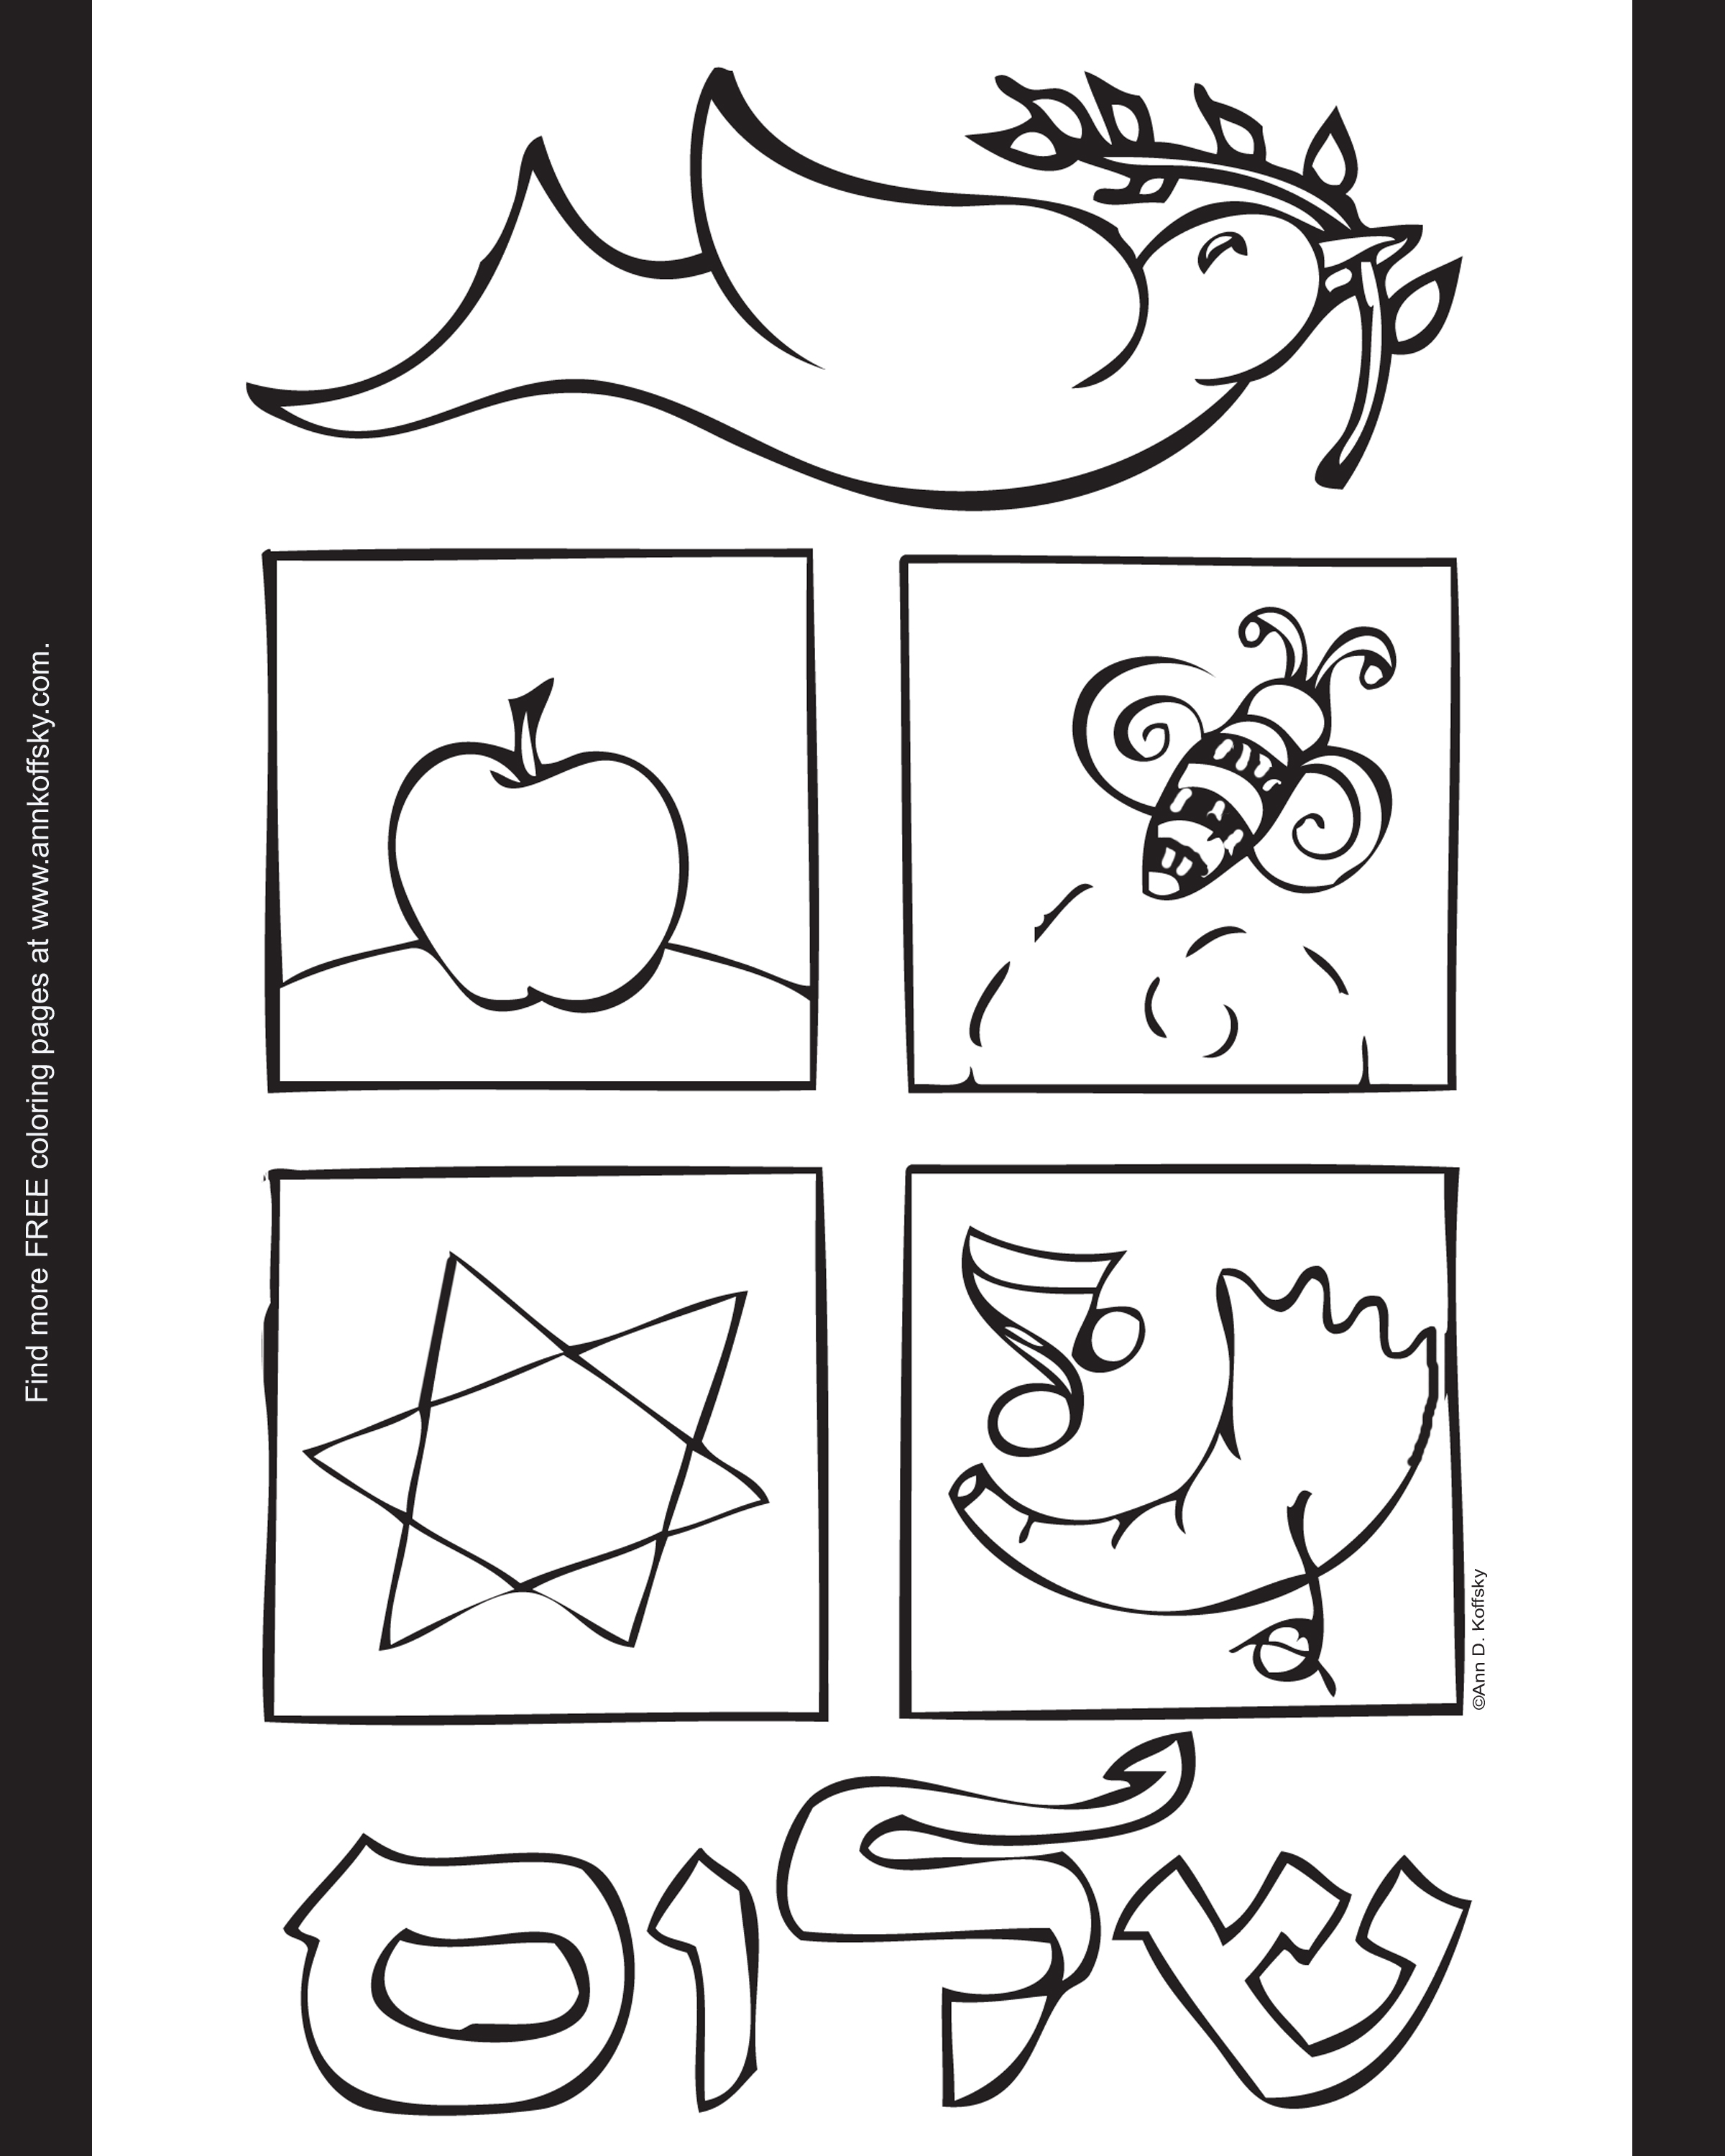 break out the apples and honey and print out the accompanying coloring page below